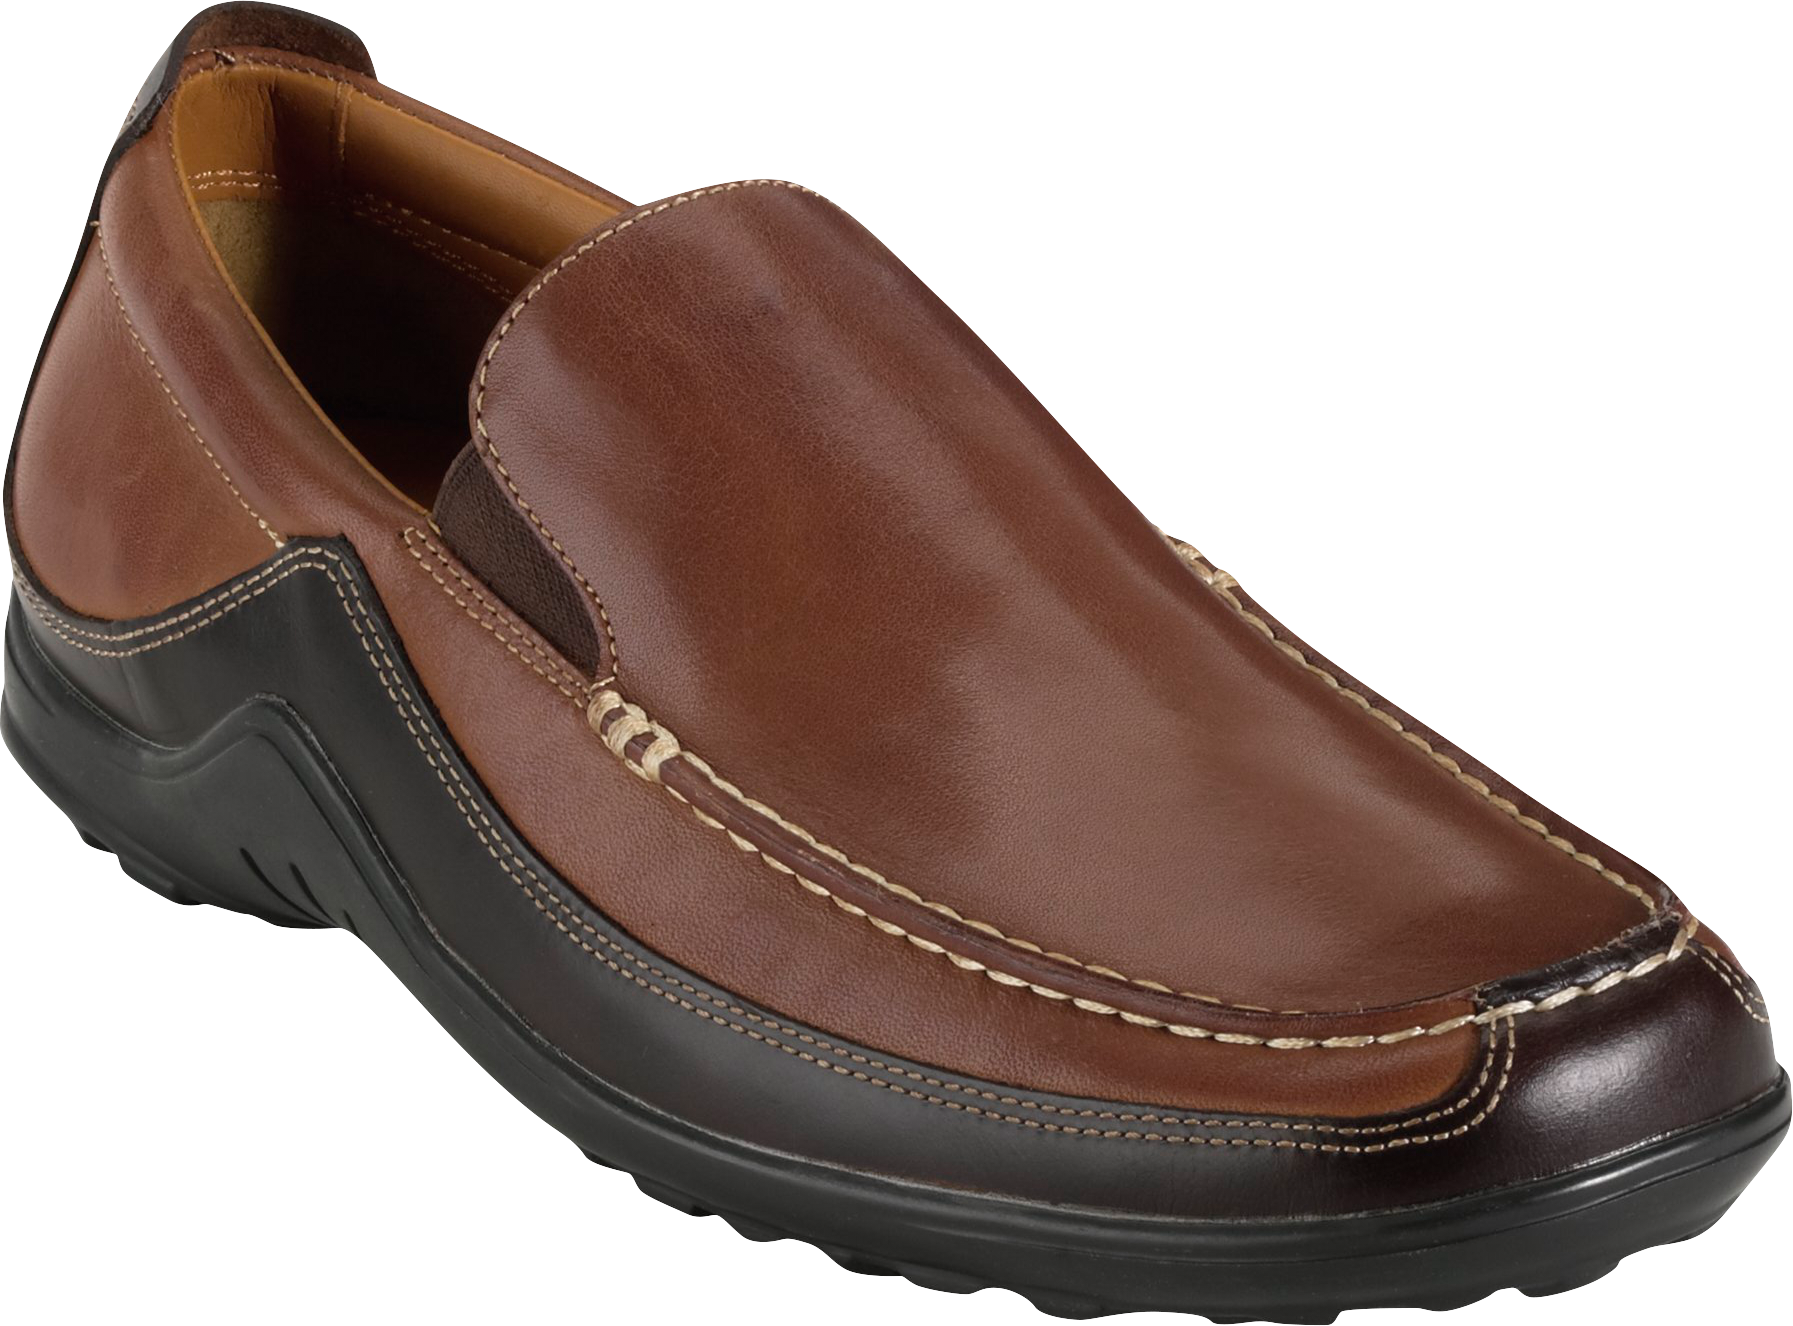 d4577a98d13 Tucker Venetian Shoes by Cole Haan - Cole Haan